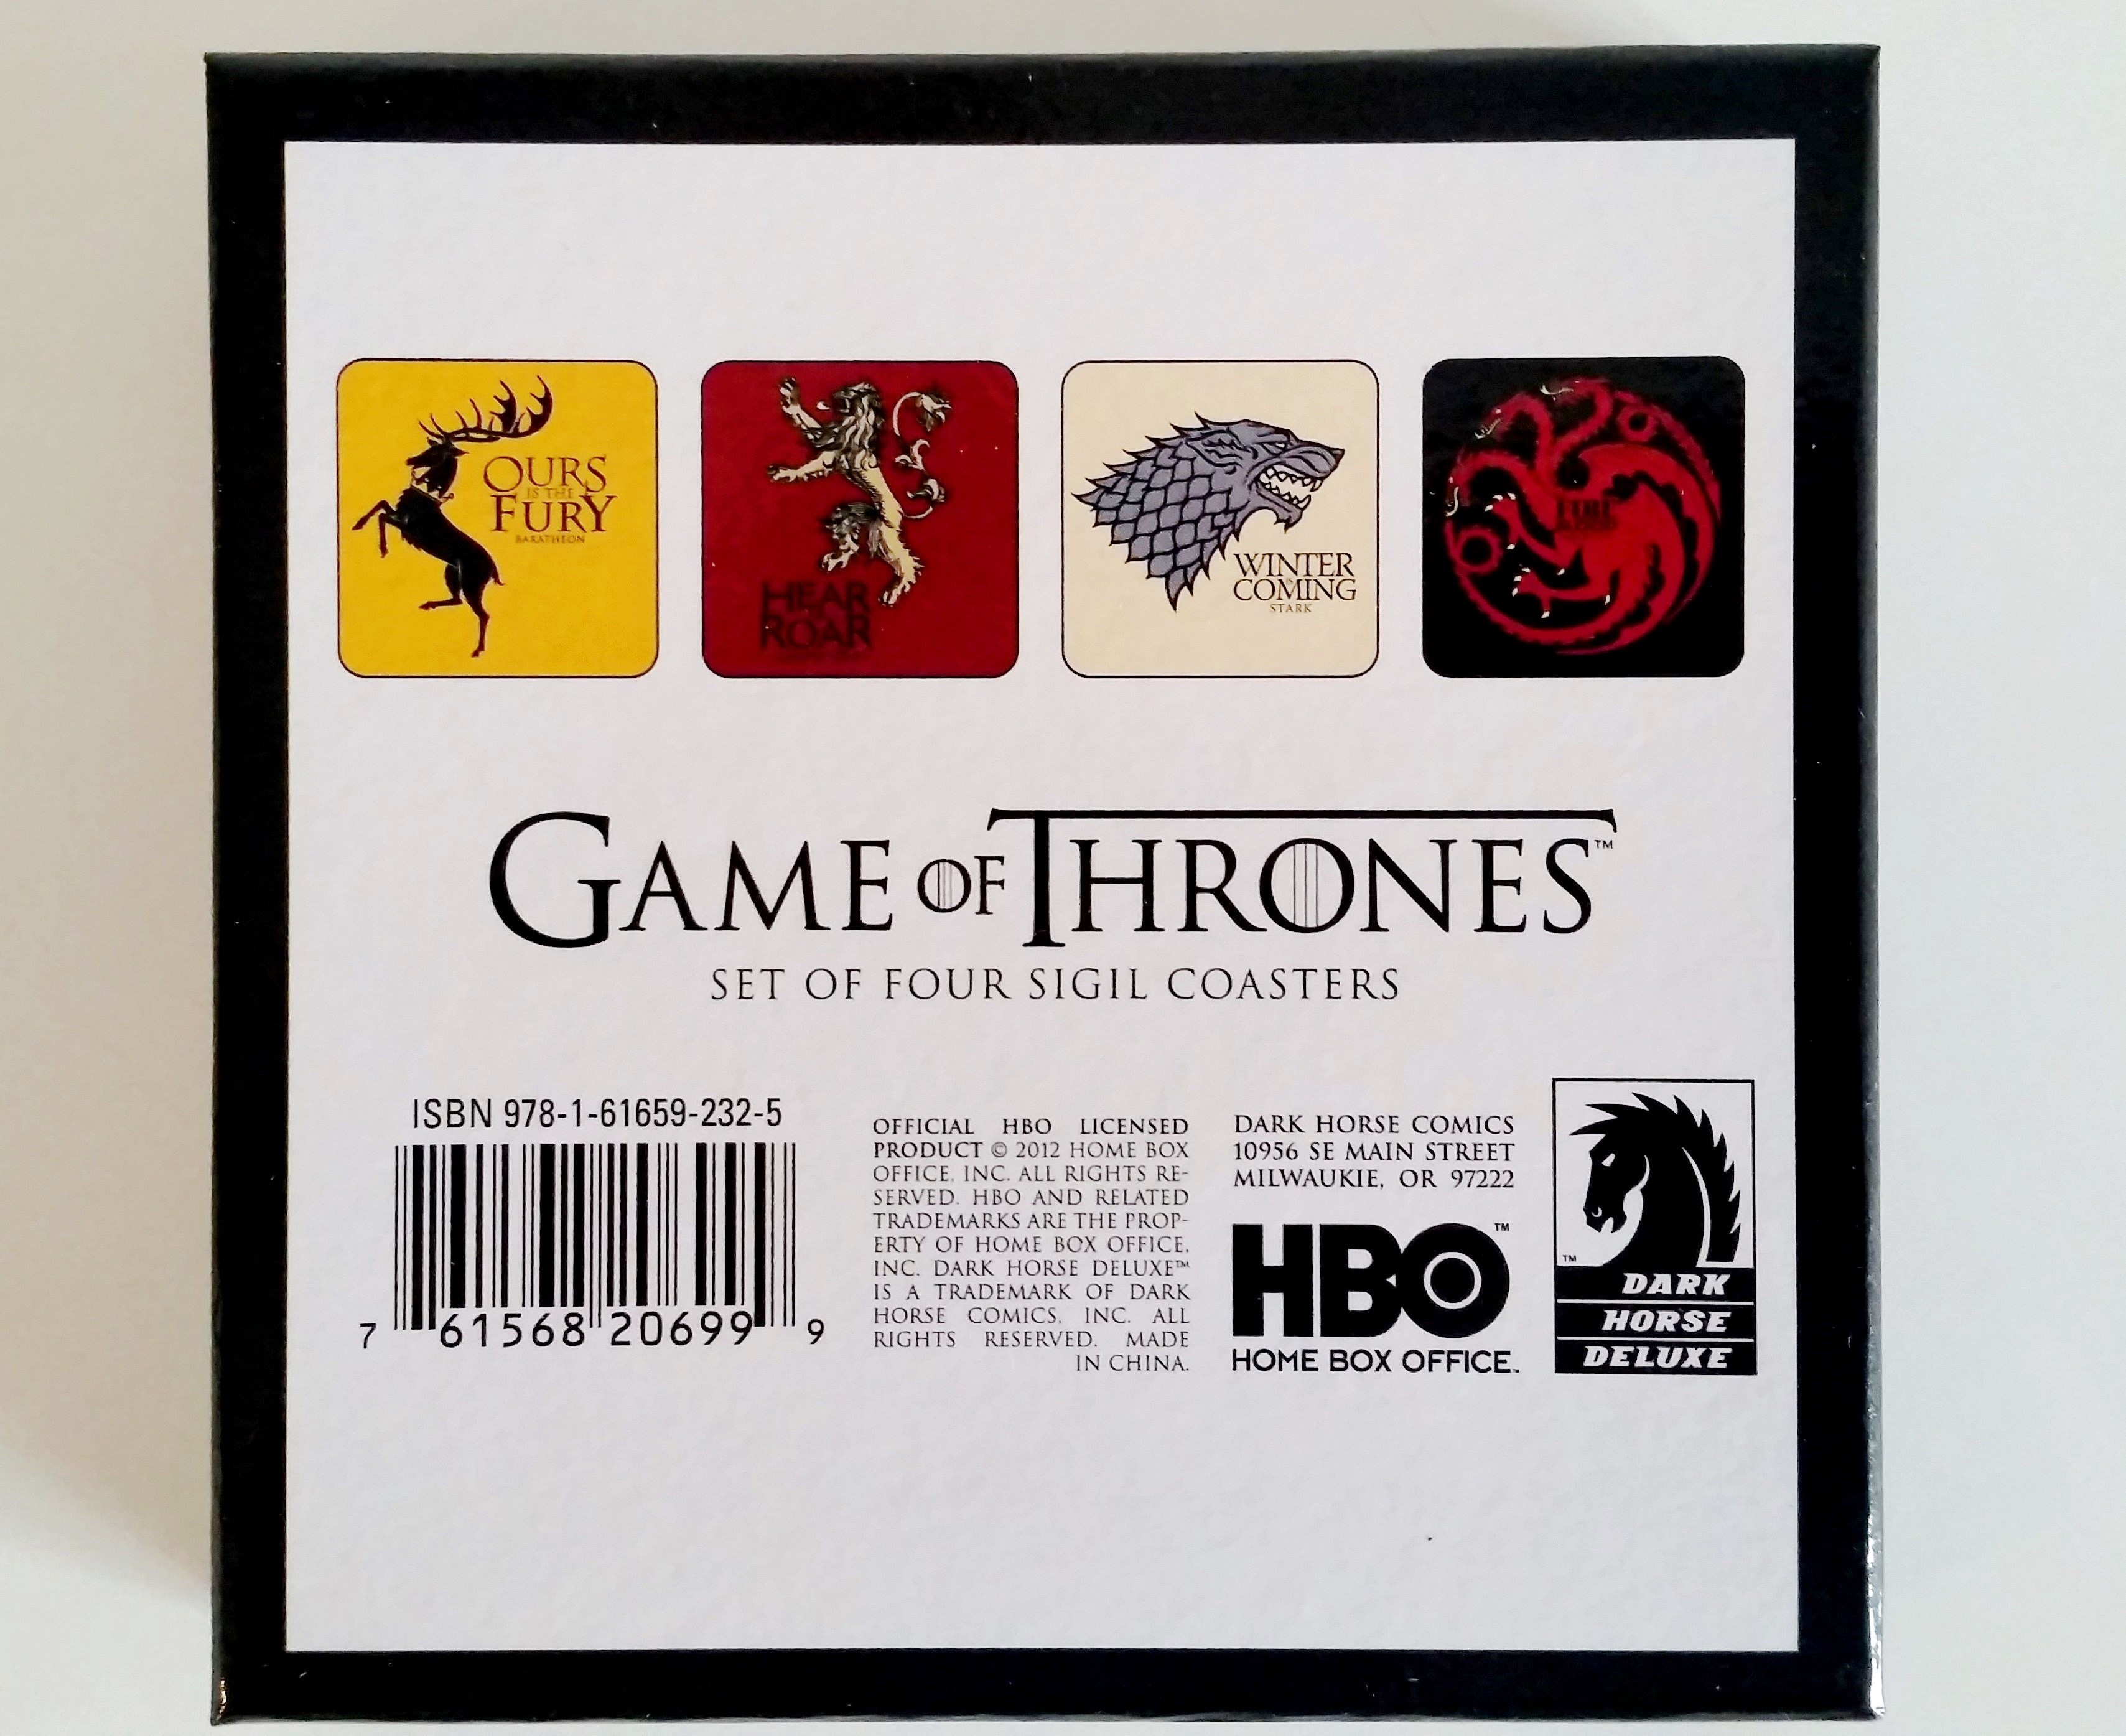 Contemporary Hbo Home Box Office Model - Home Decorating Ideas ...